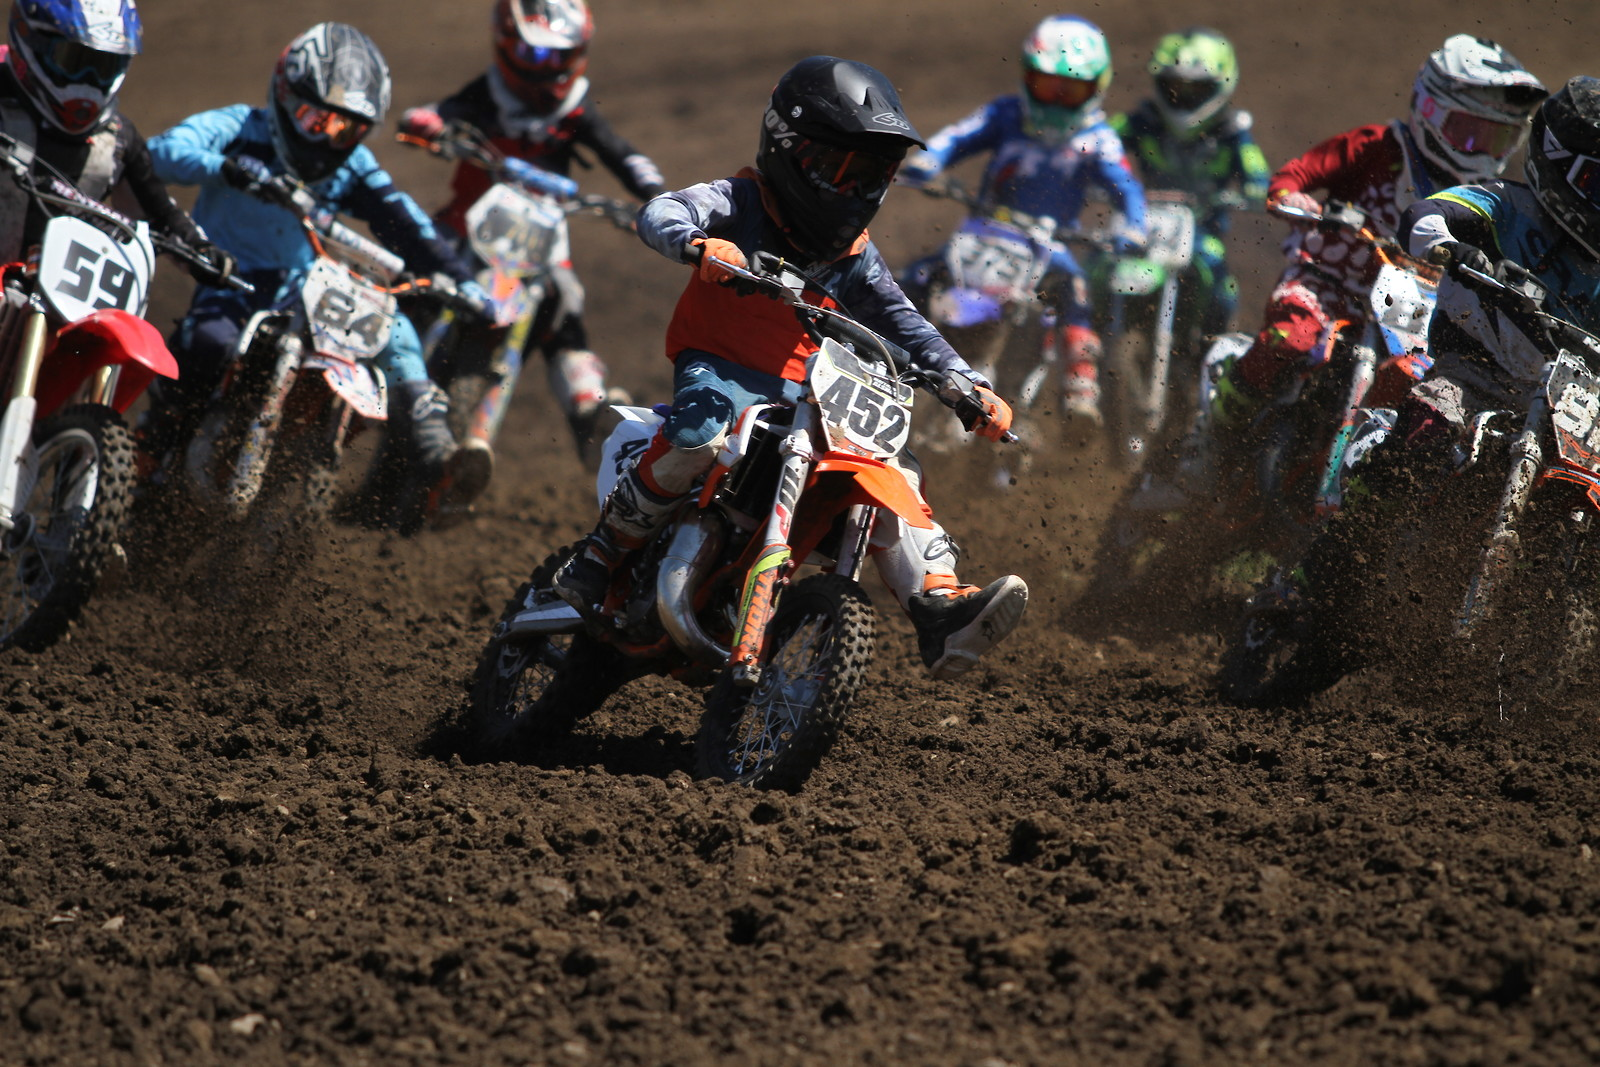 Holeshot - midwest_moto_media - Motocross Pictures - Vital MX